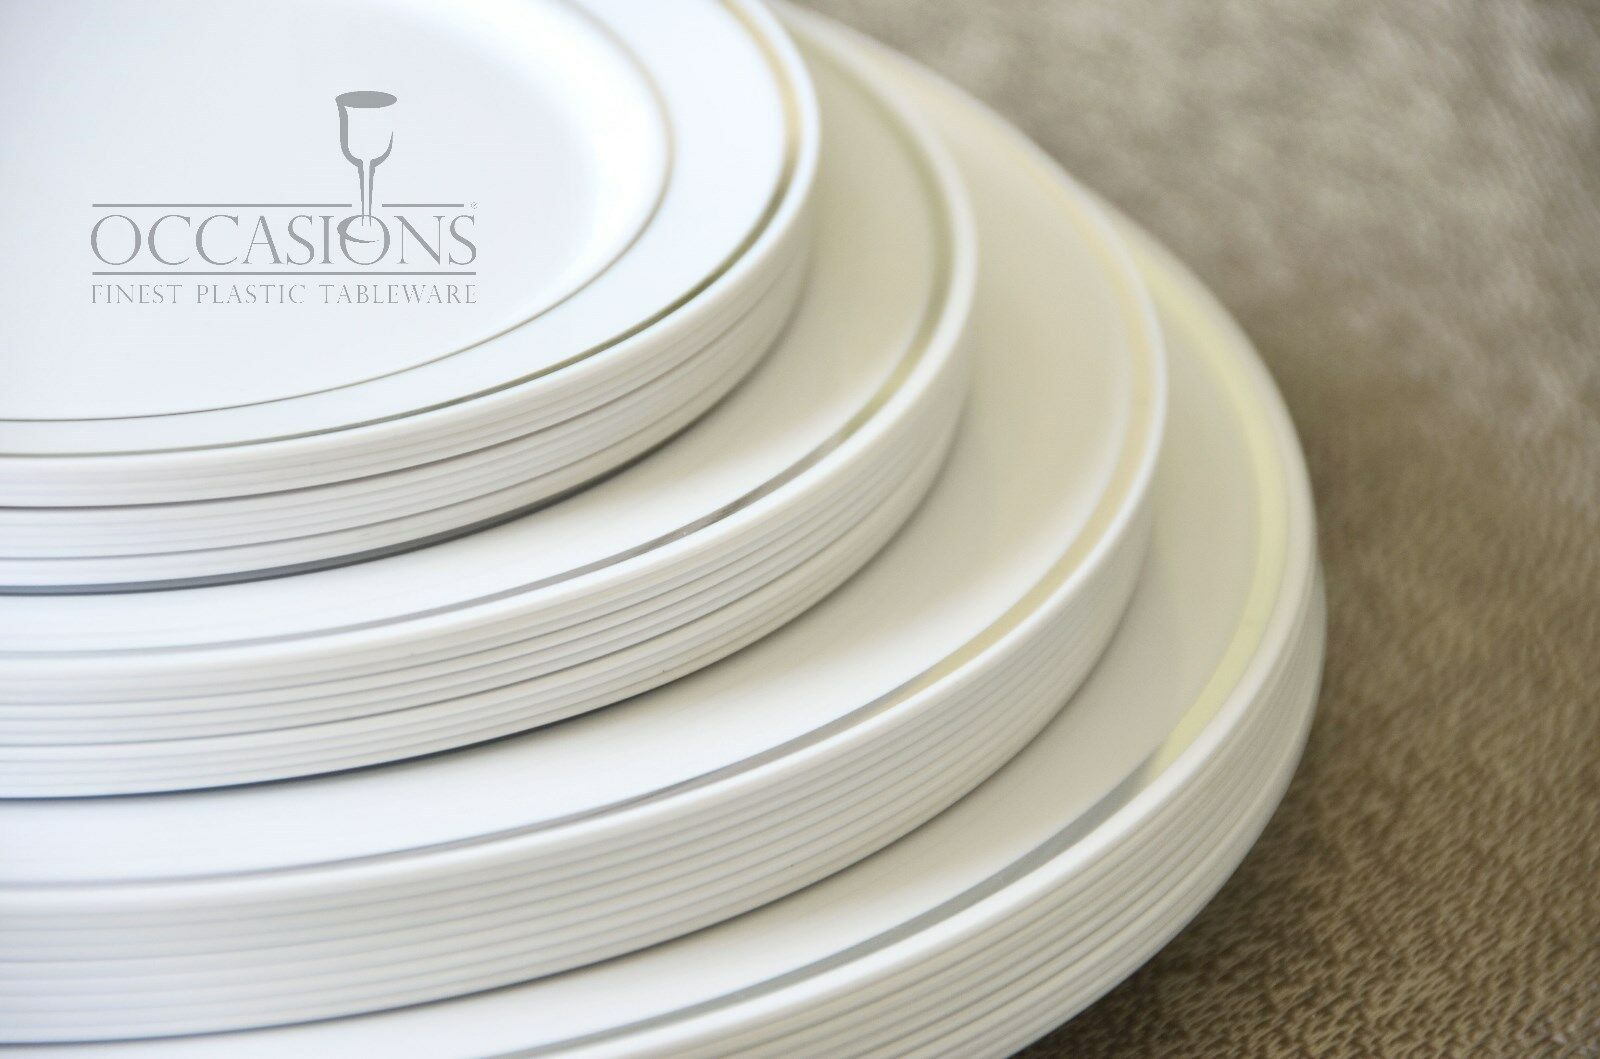 Occasions Wedding Party Disposable Plastic Plates Choose Size Qtty 1 Of 10free Shipping See More